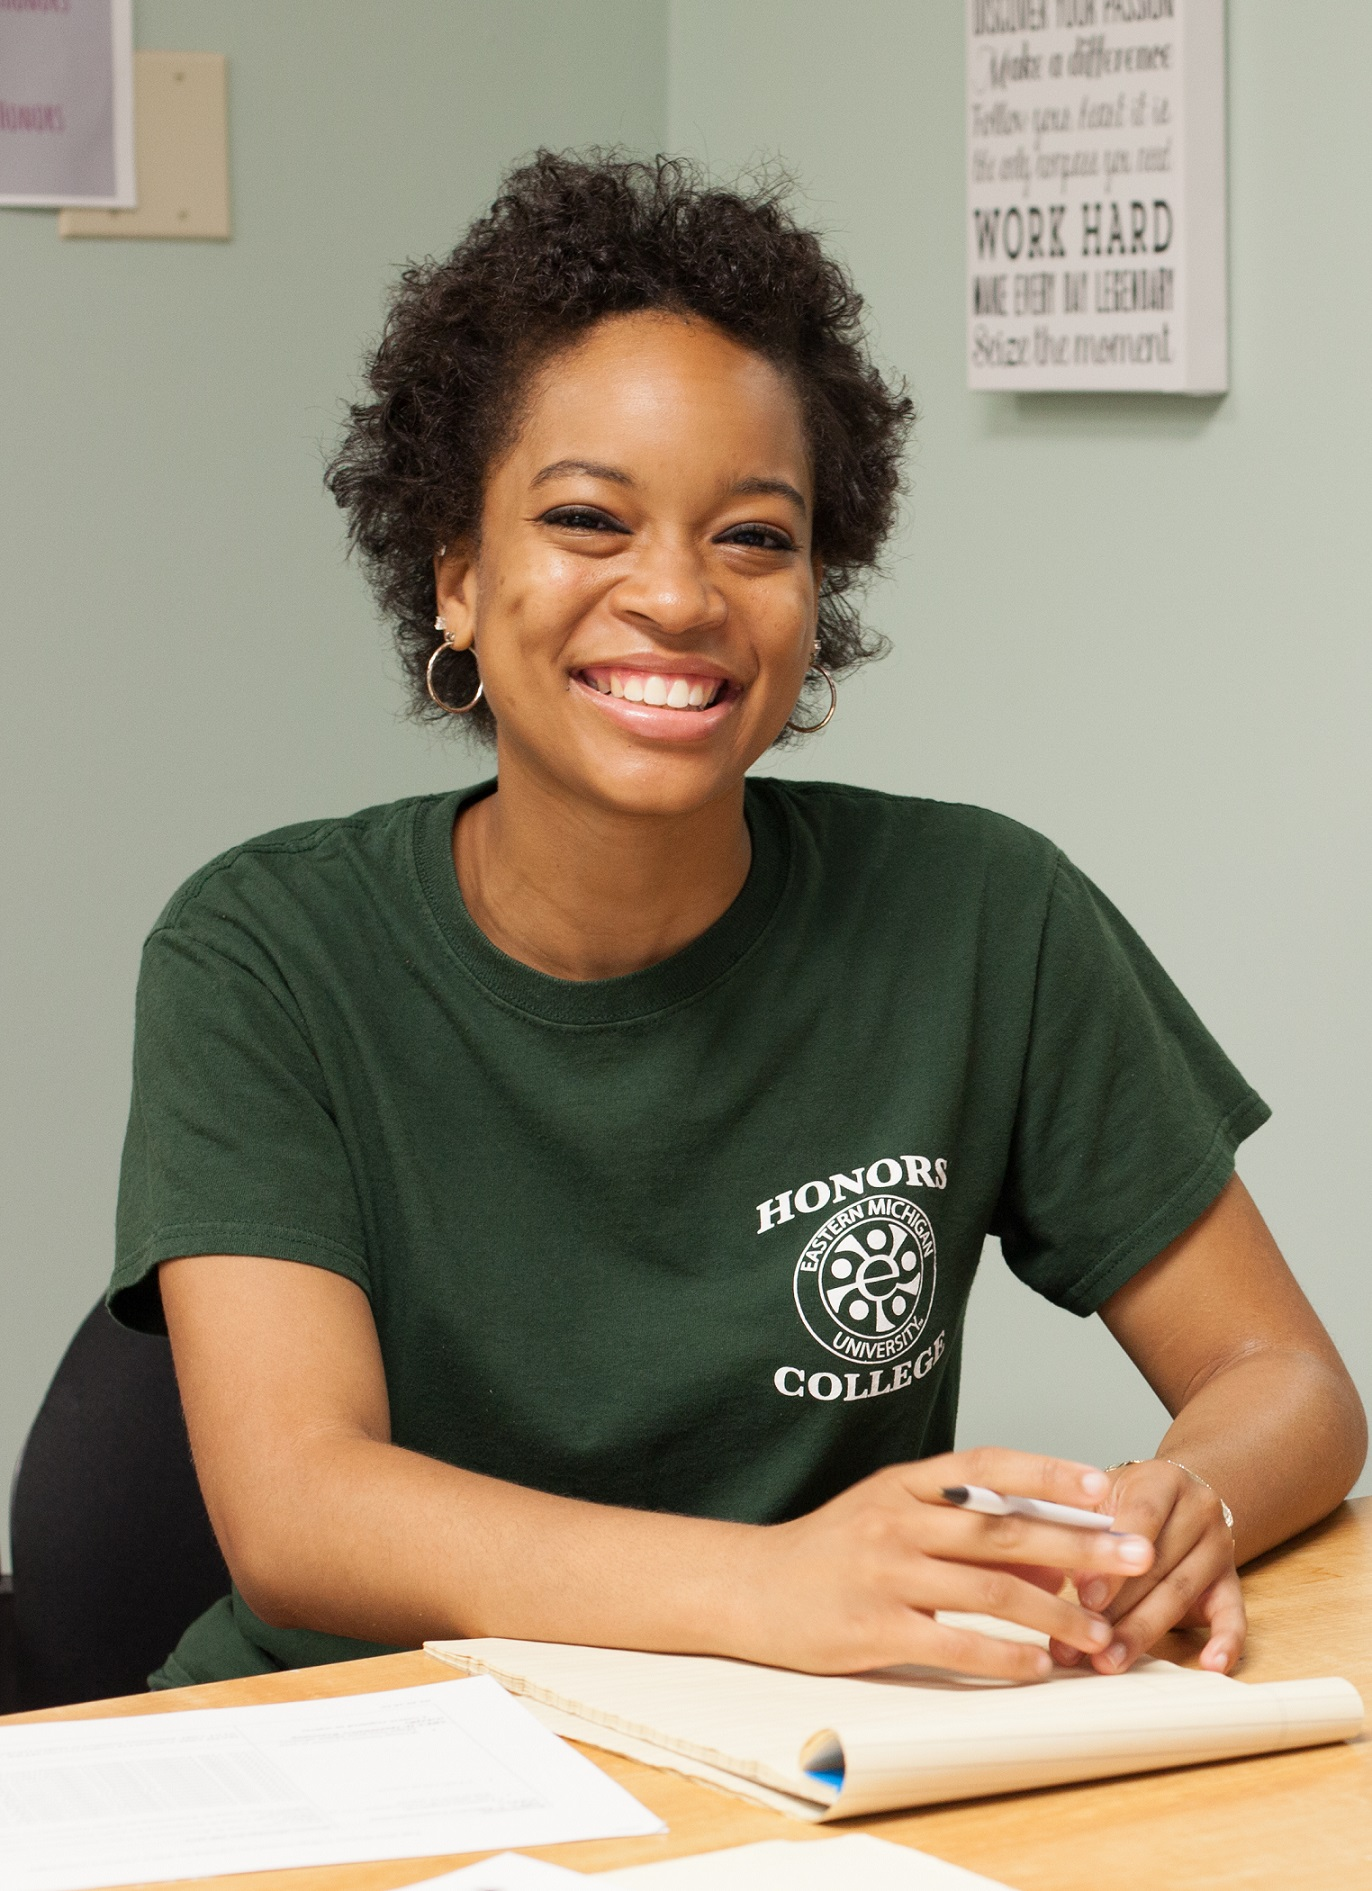 Brianna Moore is wearing a green t-shirt with the Honors College logo.